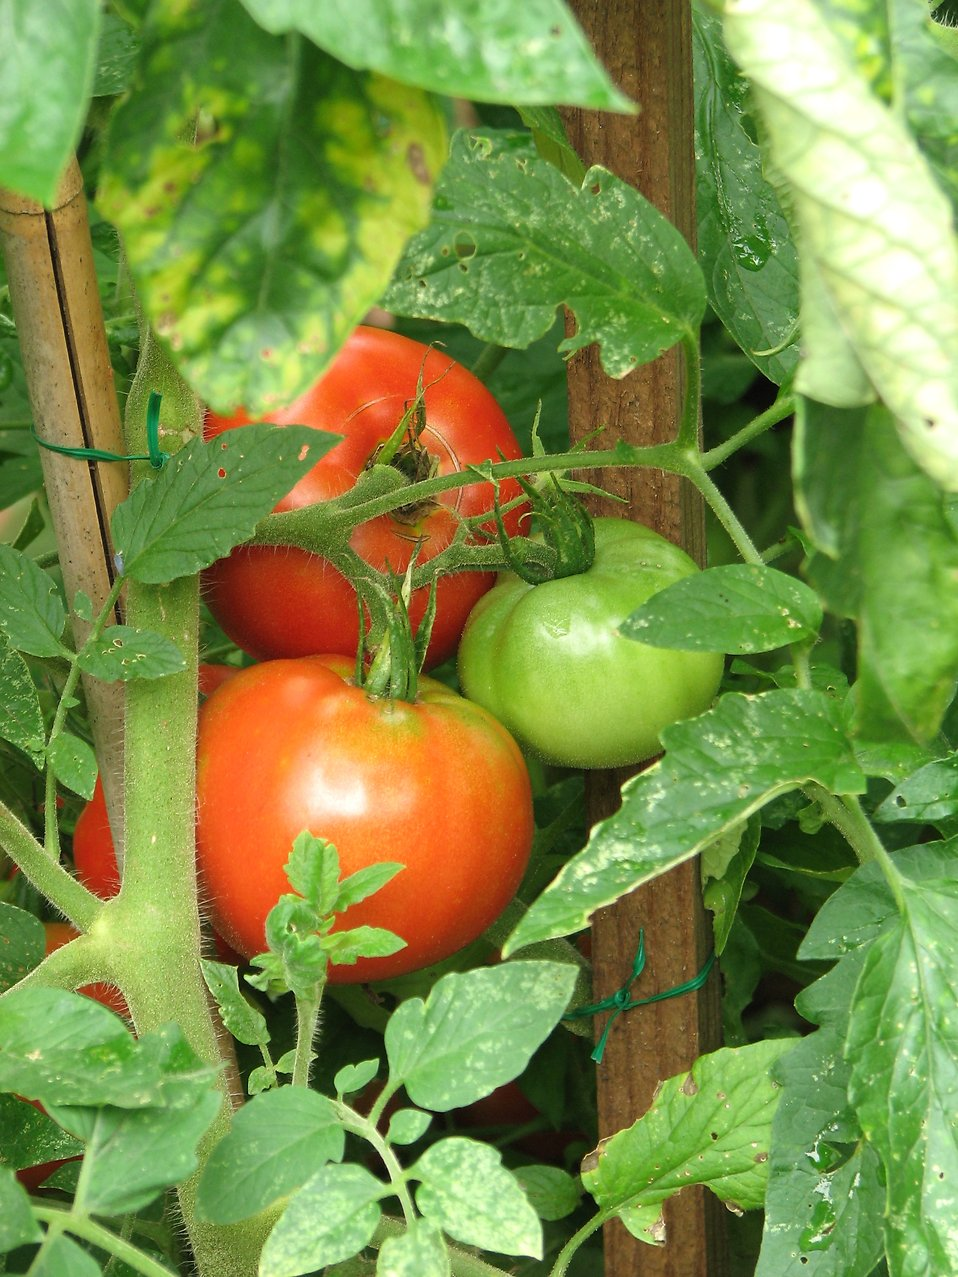 Green and red tomatoes in a garden : Free Stock Photo